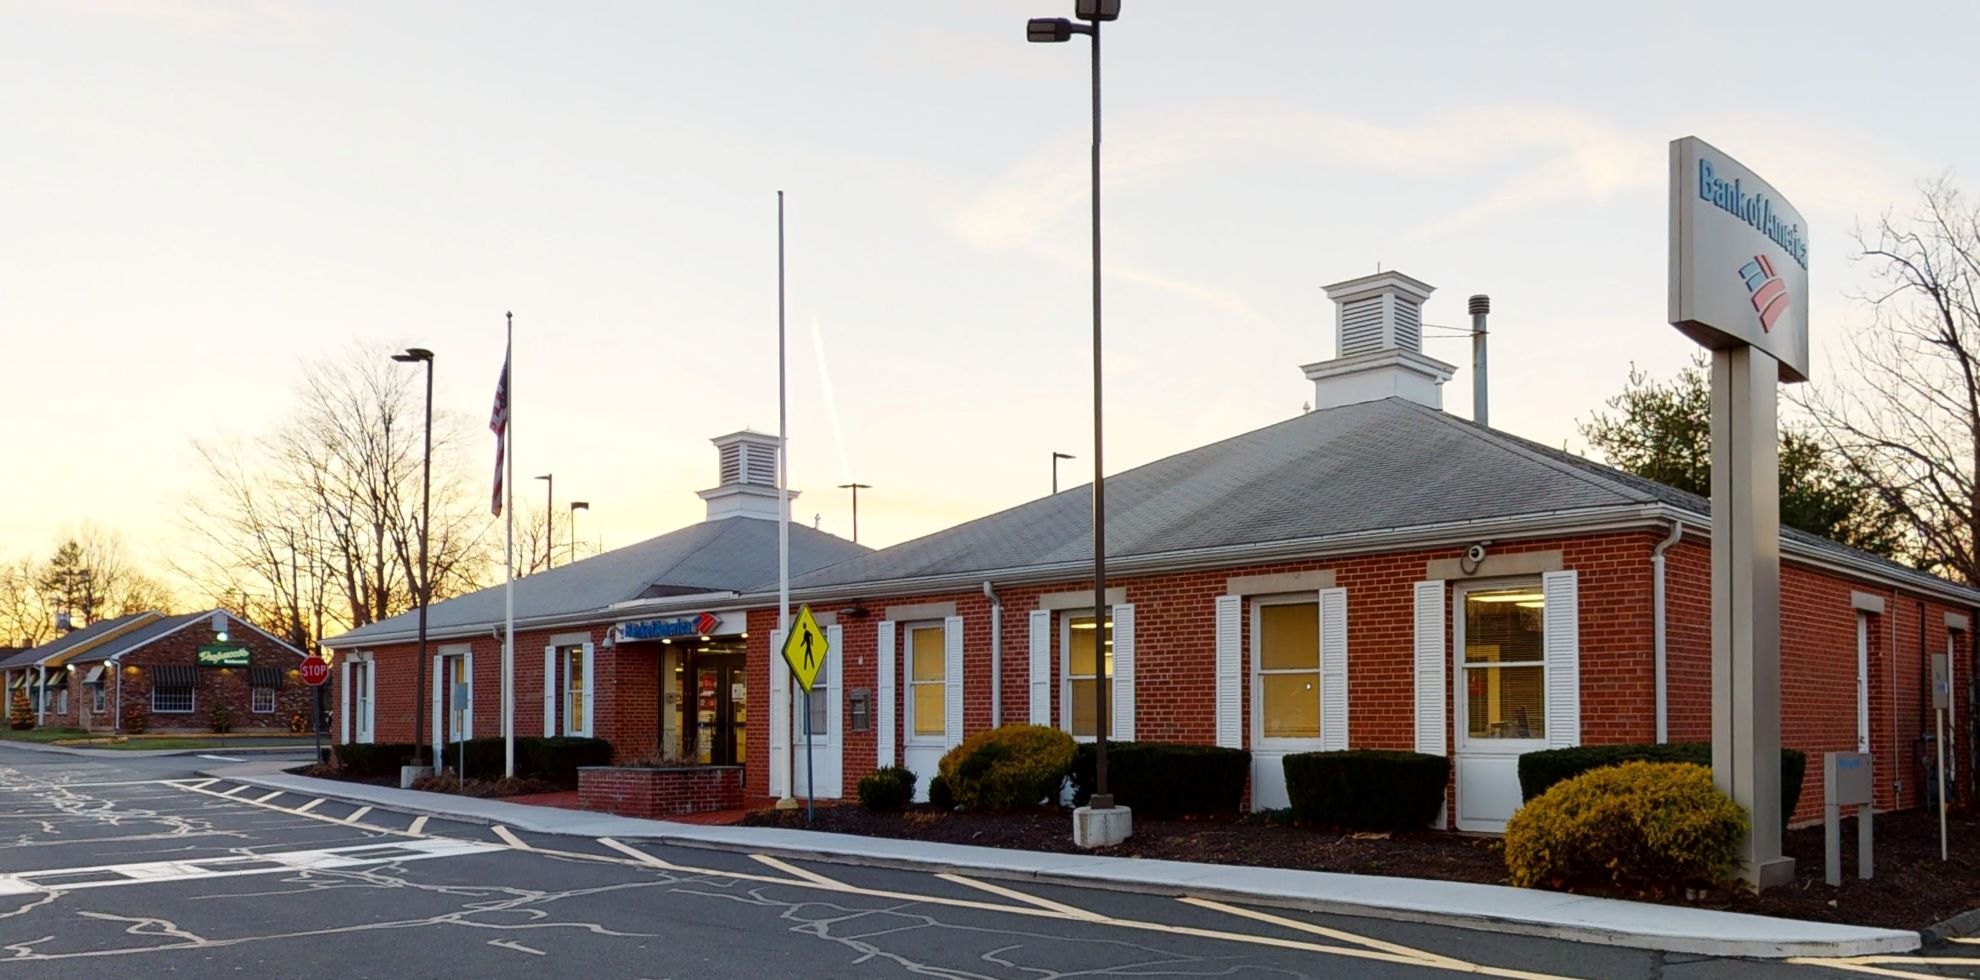 Bank of America financial center with drive-thru ATM | 185 Highland Ave, Cheshire, CT 06410